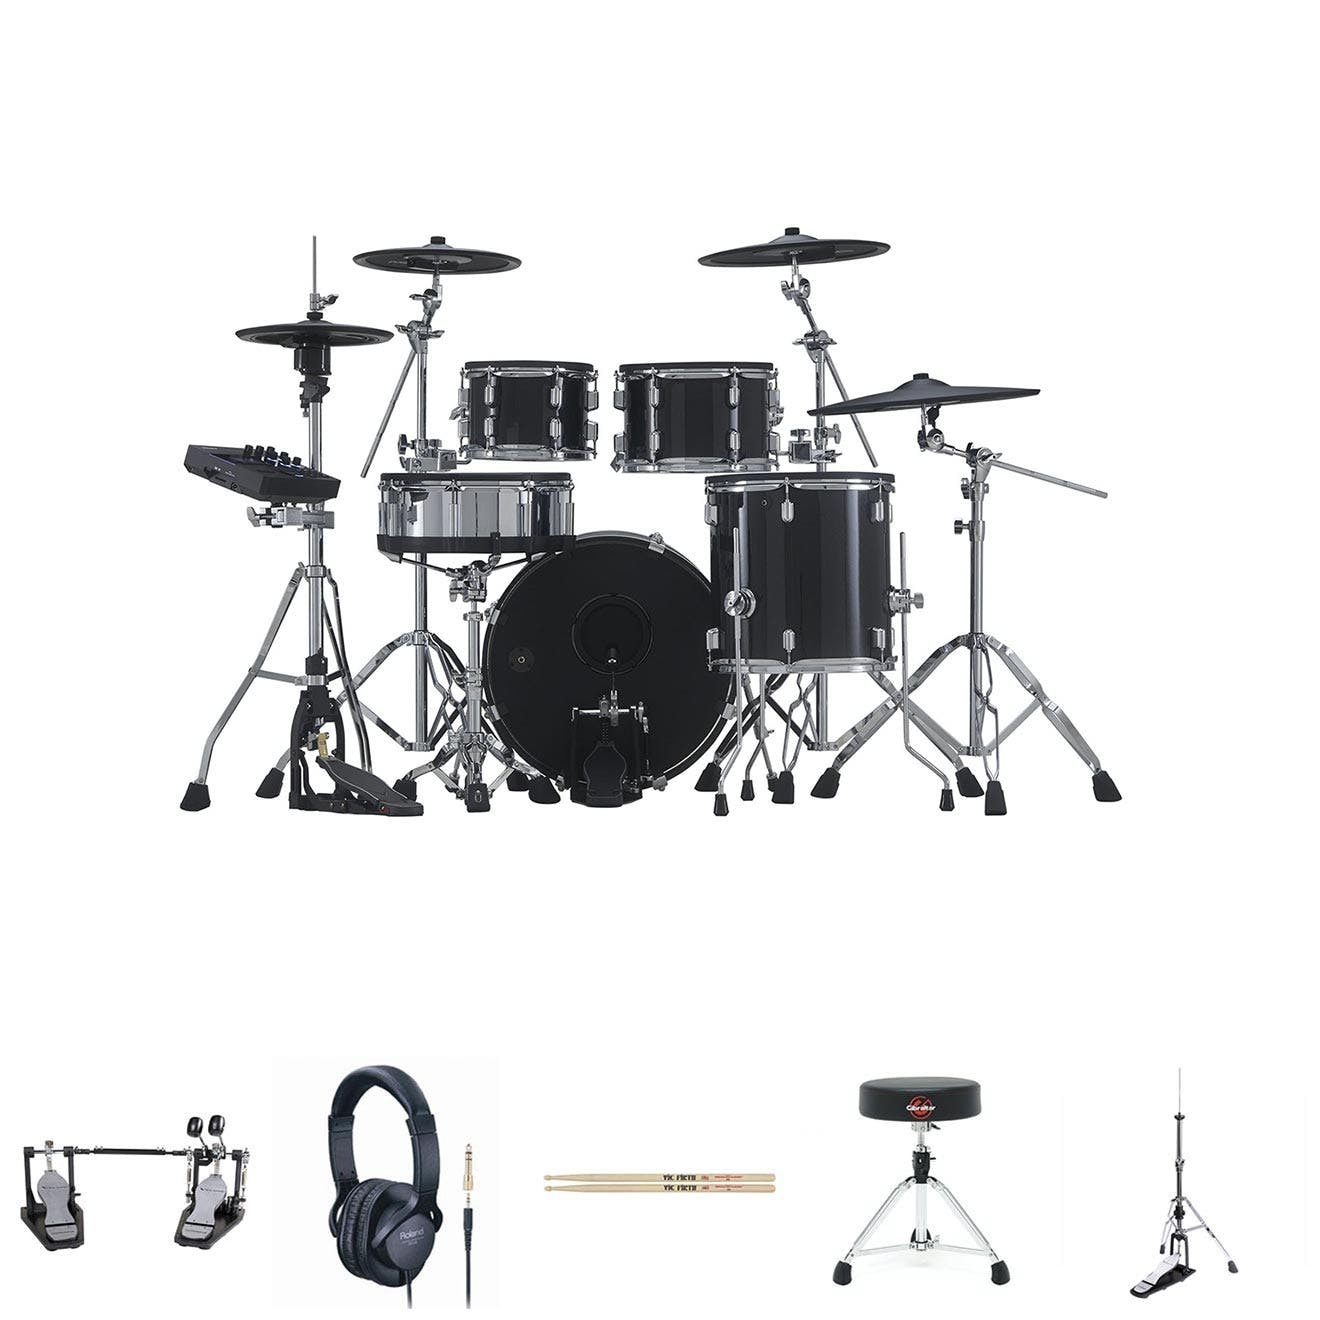 Image for Roland VAD506 w/ Double Pedal, HH Stand, Snare Stand, Sticks, Stool & Headphones from Andertons Music Co.